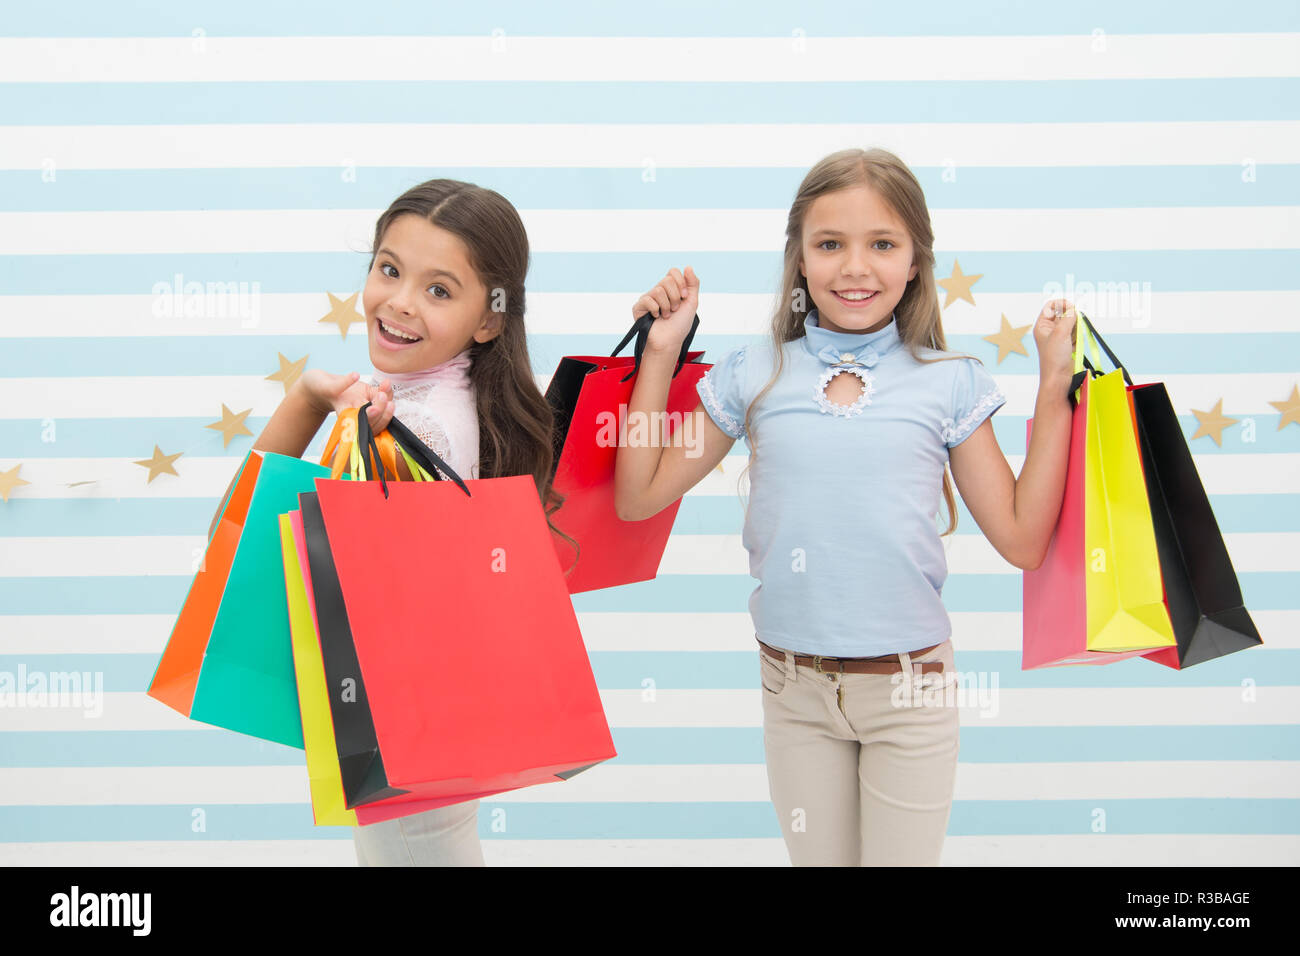 Children satisfied shopping striped background. Obsessed with shopping and clothing malls. Discount concept. Kids cute girls hold shopping bags. Shopping discount season. Spending great time together. - Stock Image